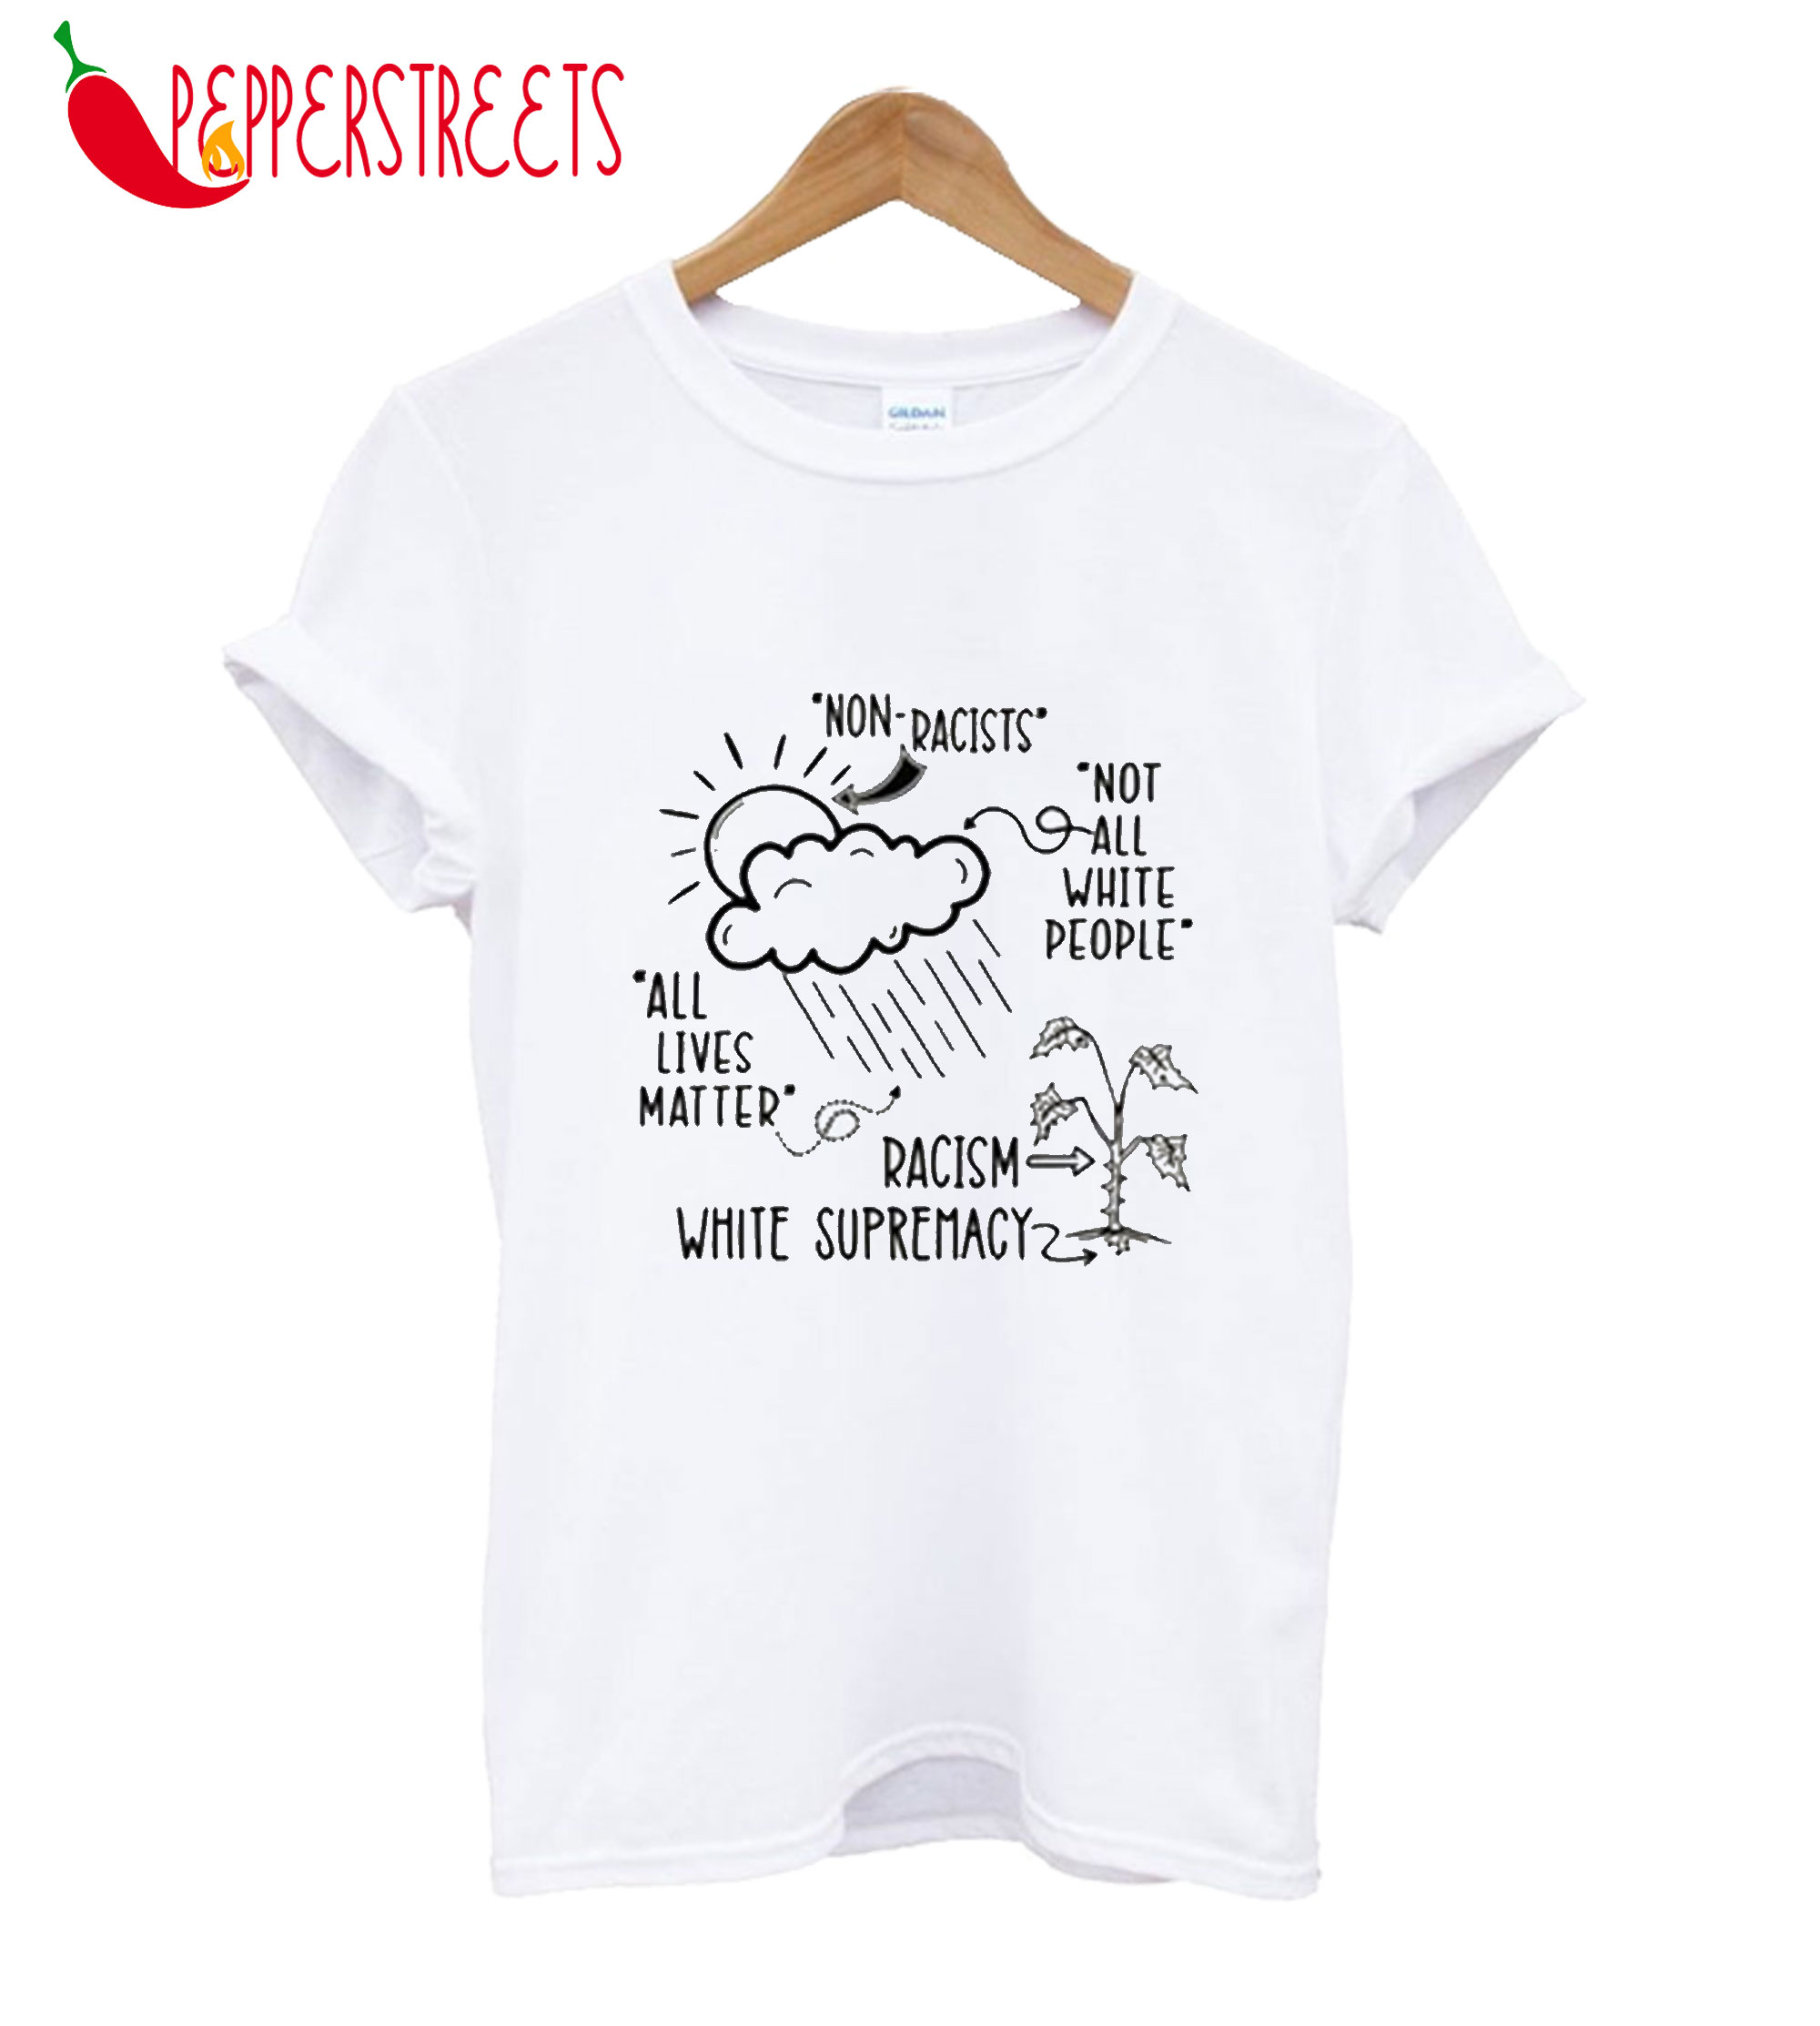 Non Racists All Lives Materr Racism White Supremacy T-Shirt